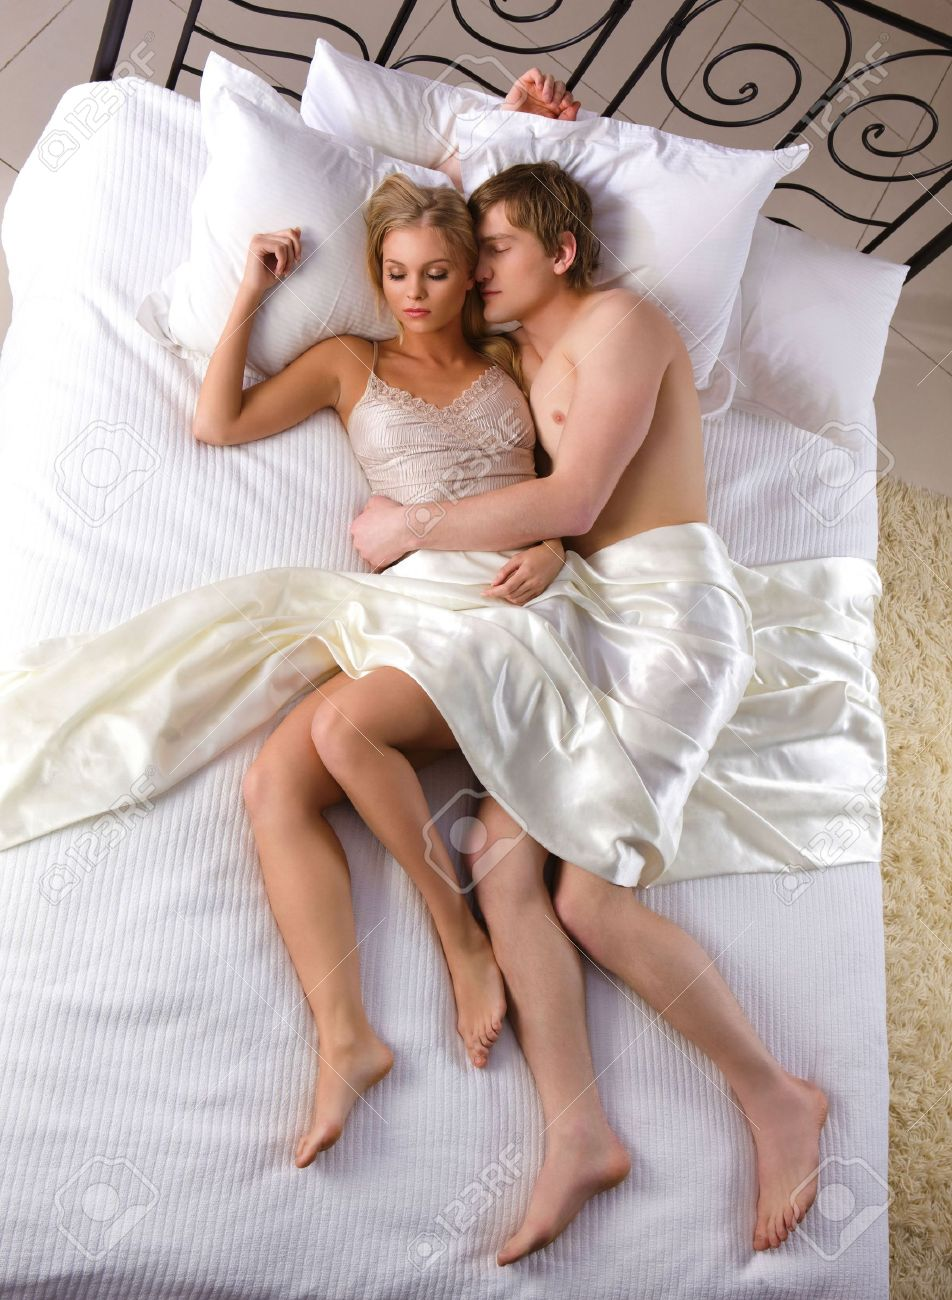 Photo Of Relaxed Husband And Wife Sleeping Together Stock Photo